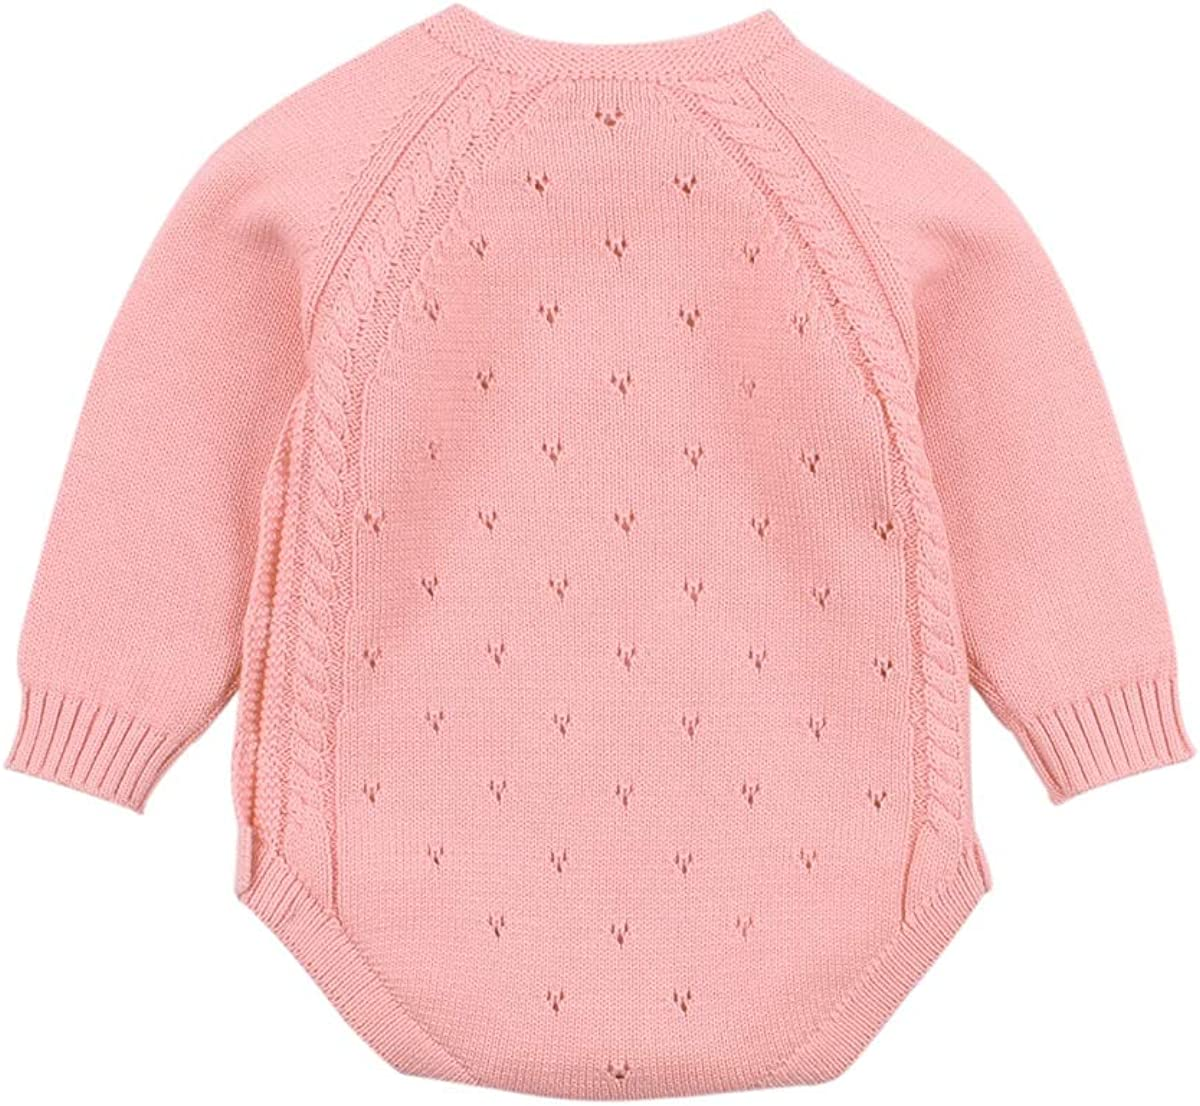 Amazon.com: niceclould US Newborn Baby Girl Solid Bodysuit Outfit